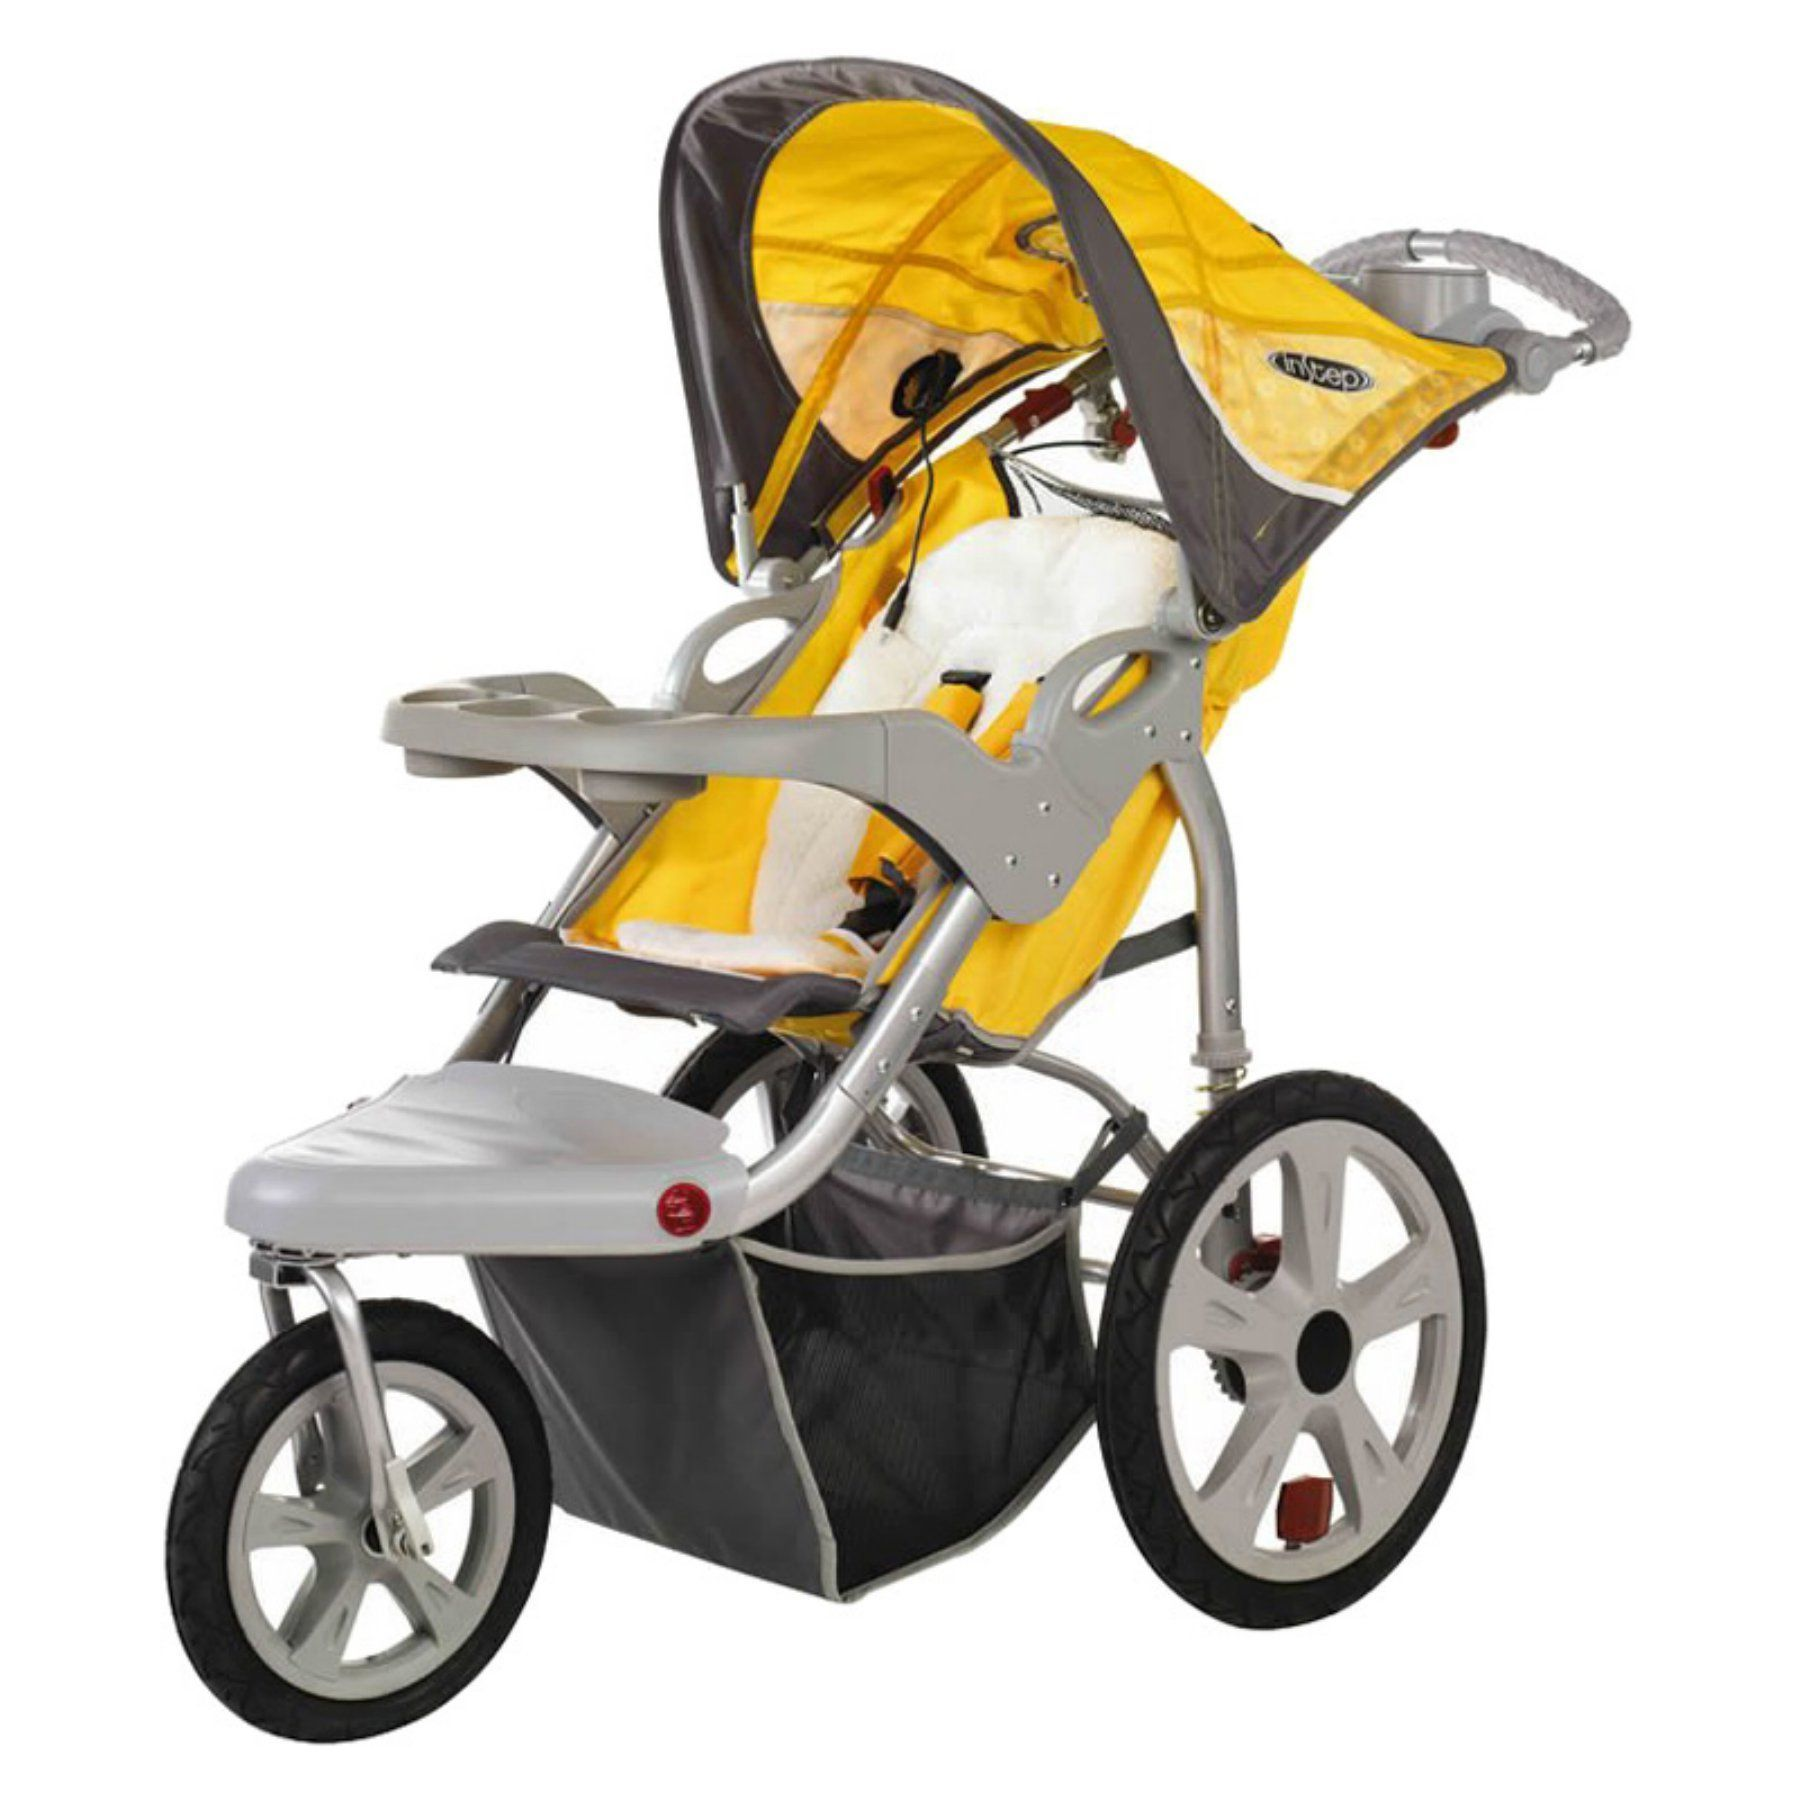 InSTEP Grand Safari Swivel Single Jogging Stroller 11 AR183